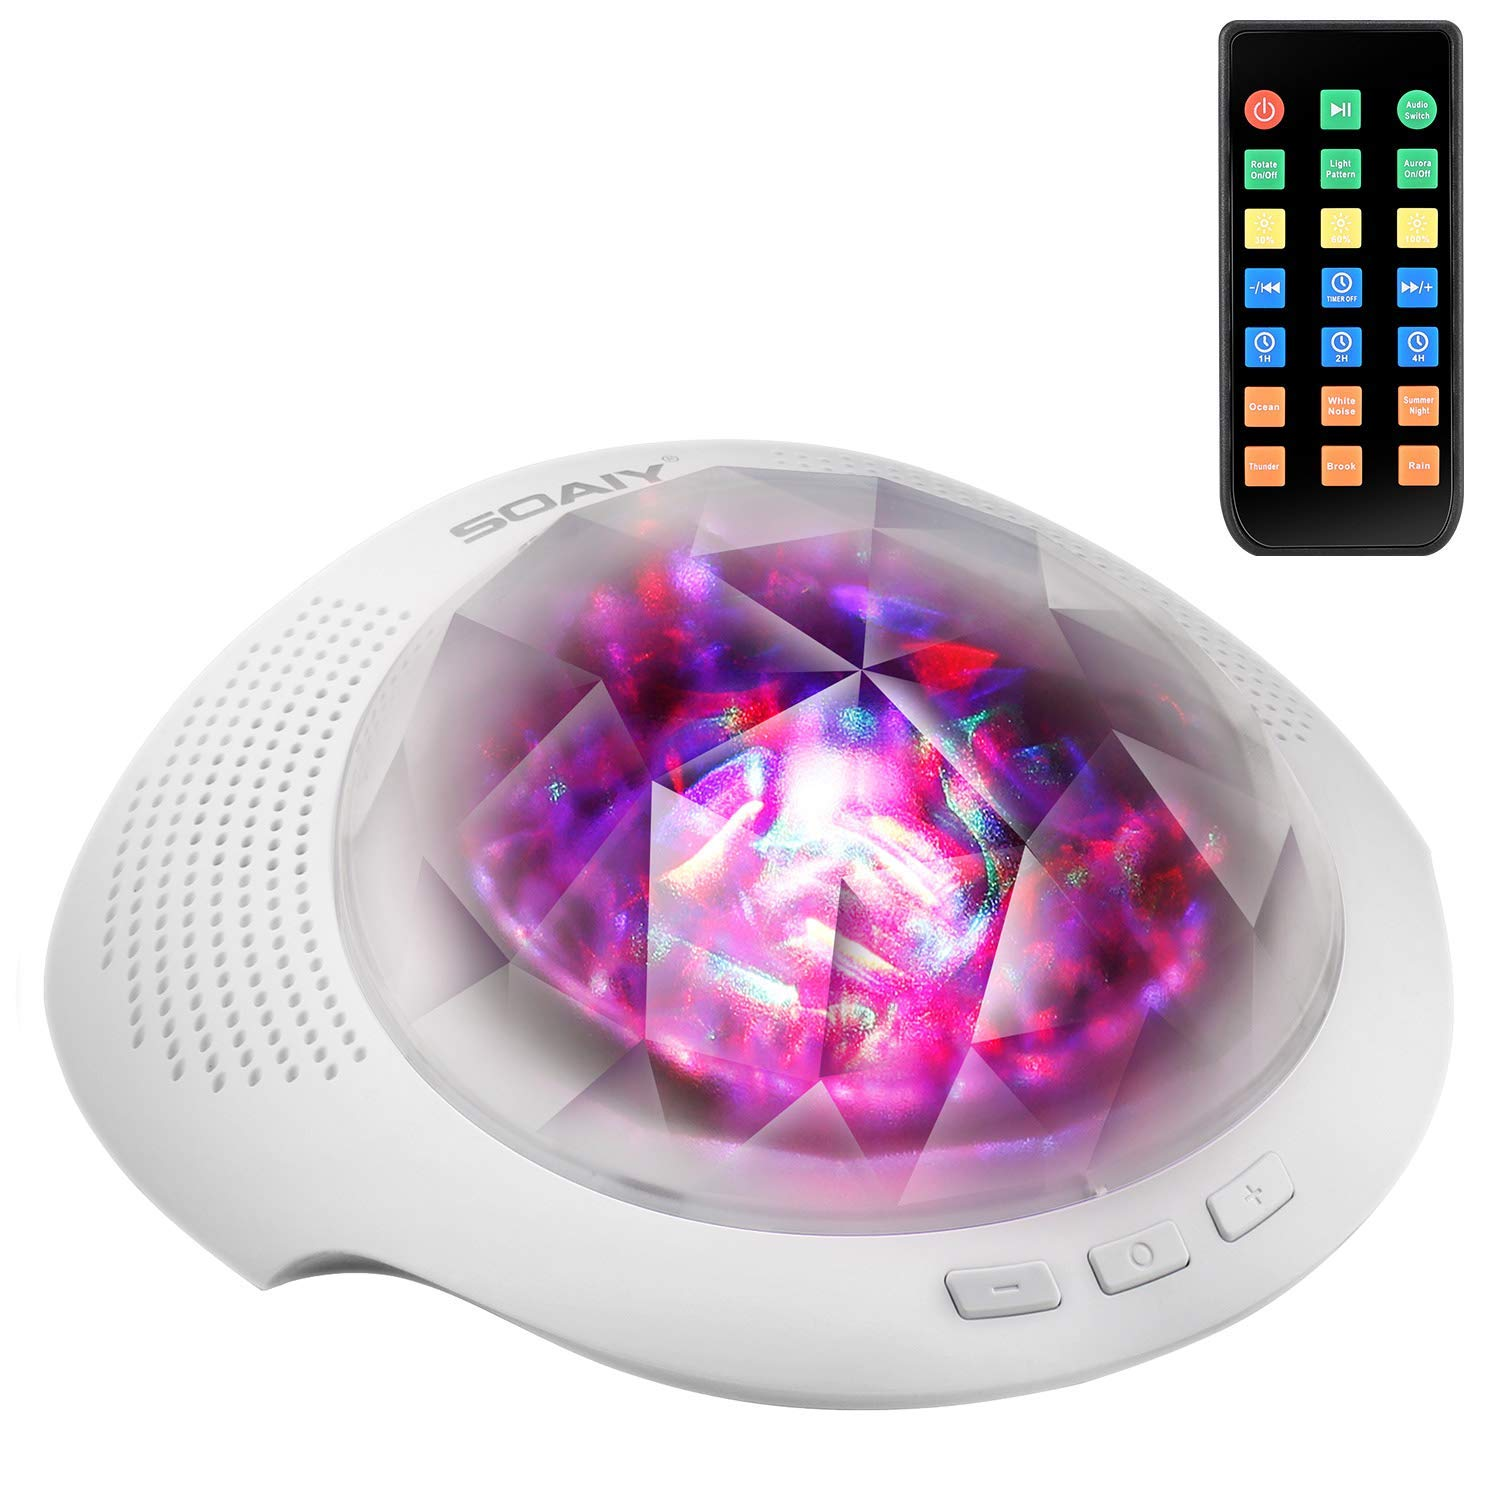 SOAIY Aurora Night Light Sound Machine Baby Projector Light Show Ocean Wave On Ceiling w/ Built-in Music Player Bluetooth Speaker, Timer, Remote Control for Nursery Bedroom Living Room, White